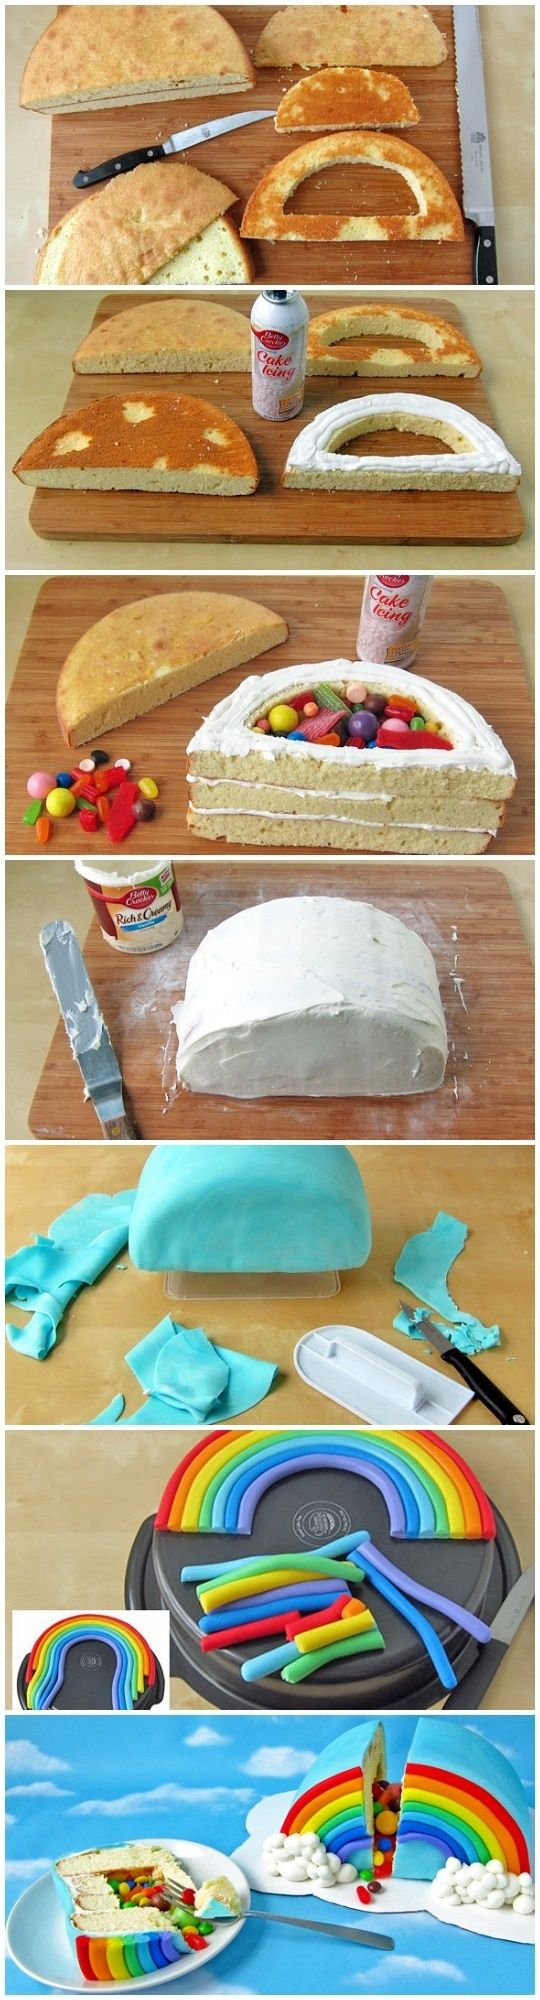 DIY rainbow cake. I'm just really digging the fact you can fill your cake with candy :) or icecream!!!